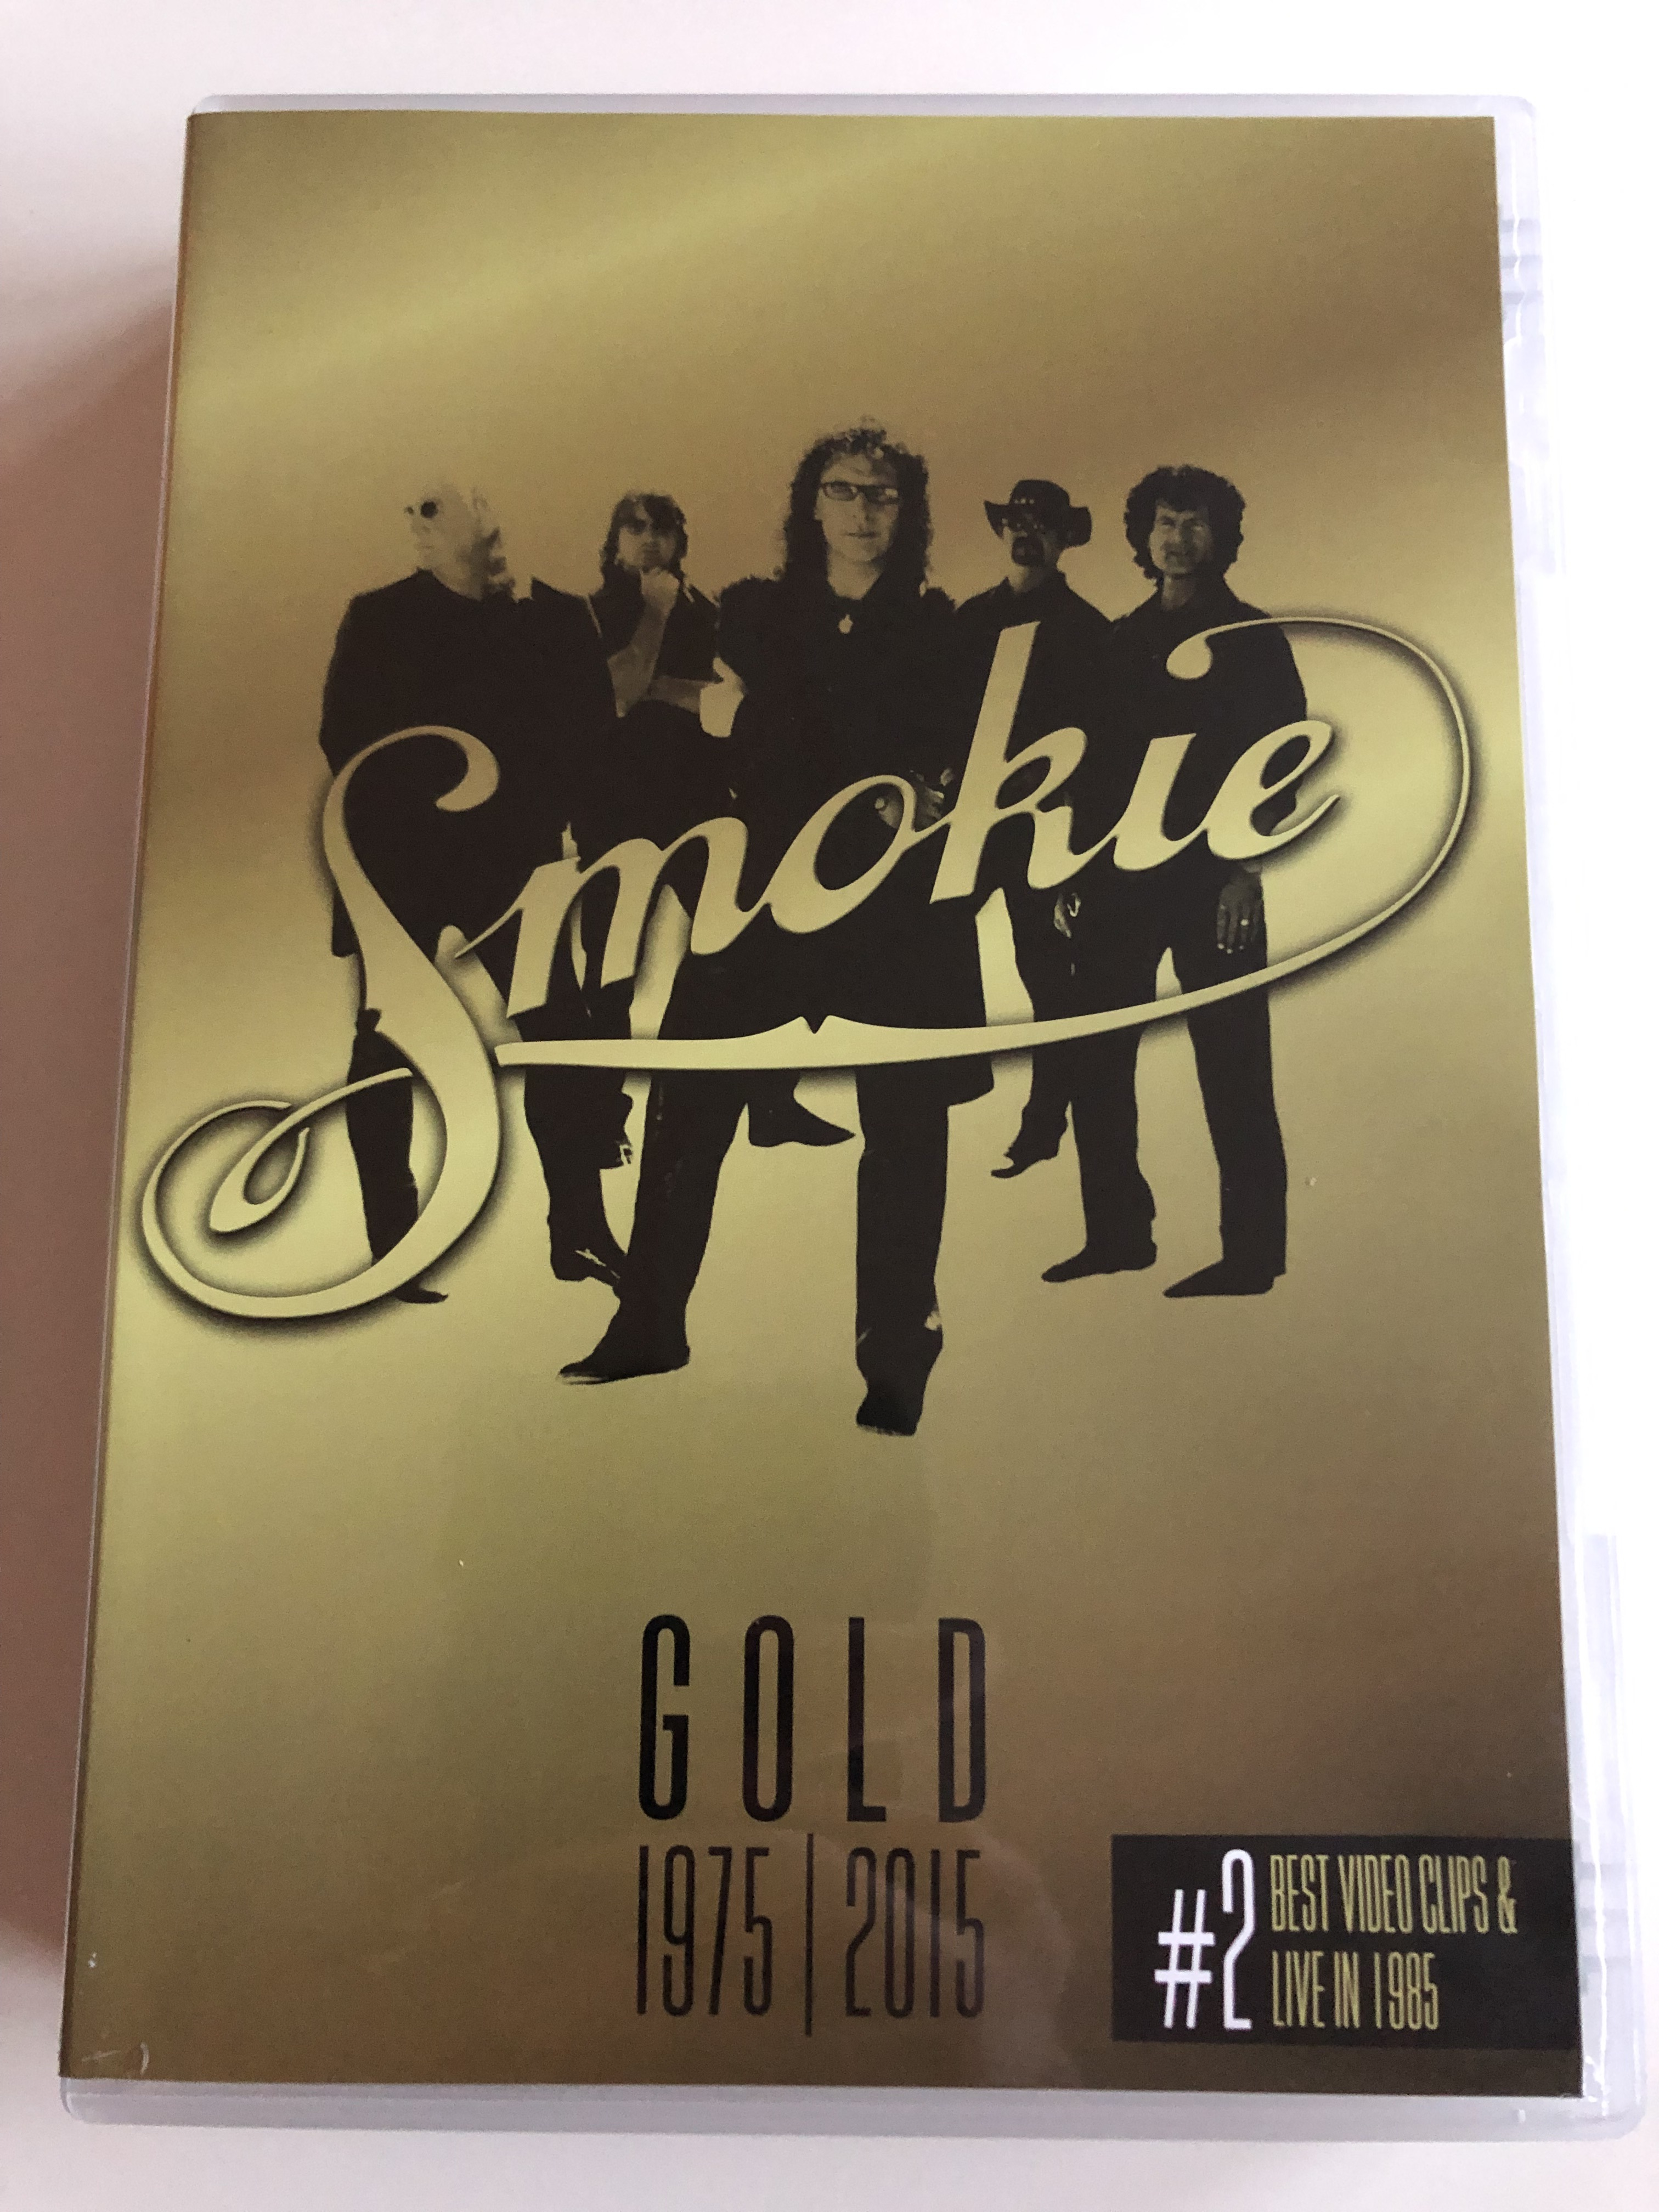 smokie-gold-1975-2015-dvd-2-40th-anniversary-edition-best-video-clips-live-in-1985-excerpts-from-the-legendary-charity-concert-in-bradford-england-1985-1-.jpg